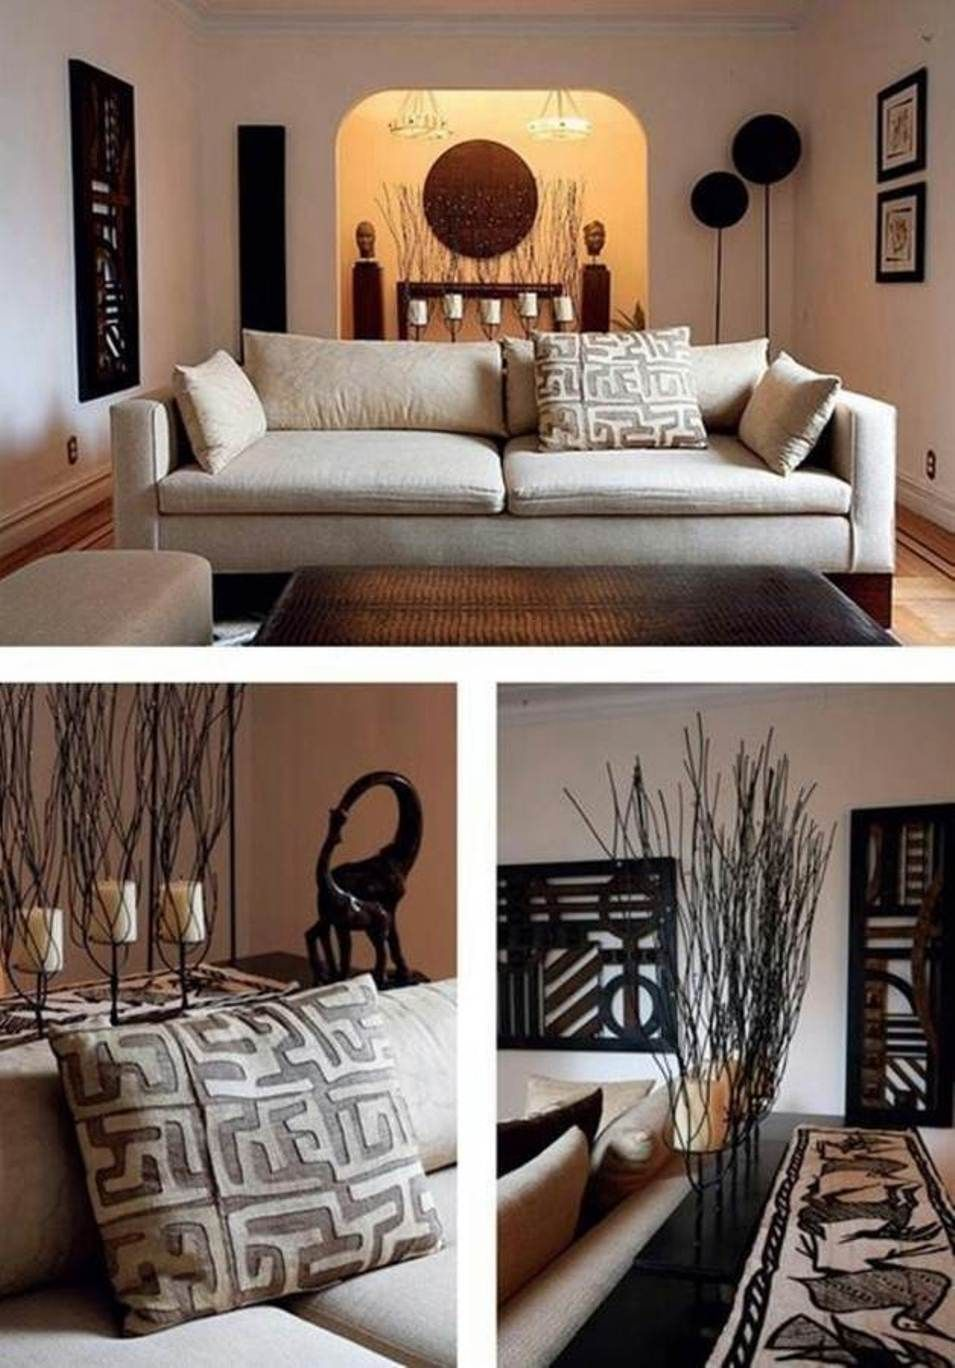 south african decorating ideas | african/tribal/global design